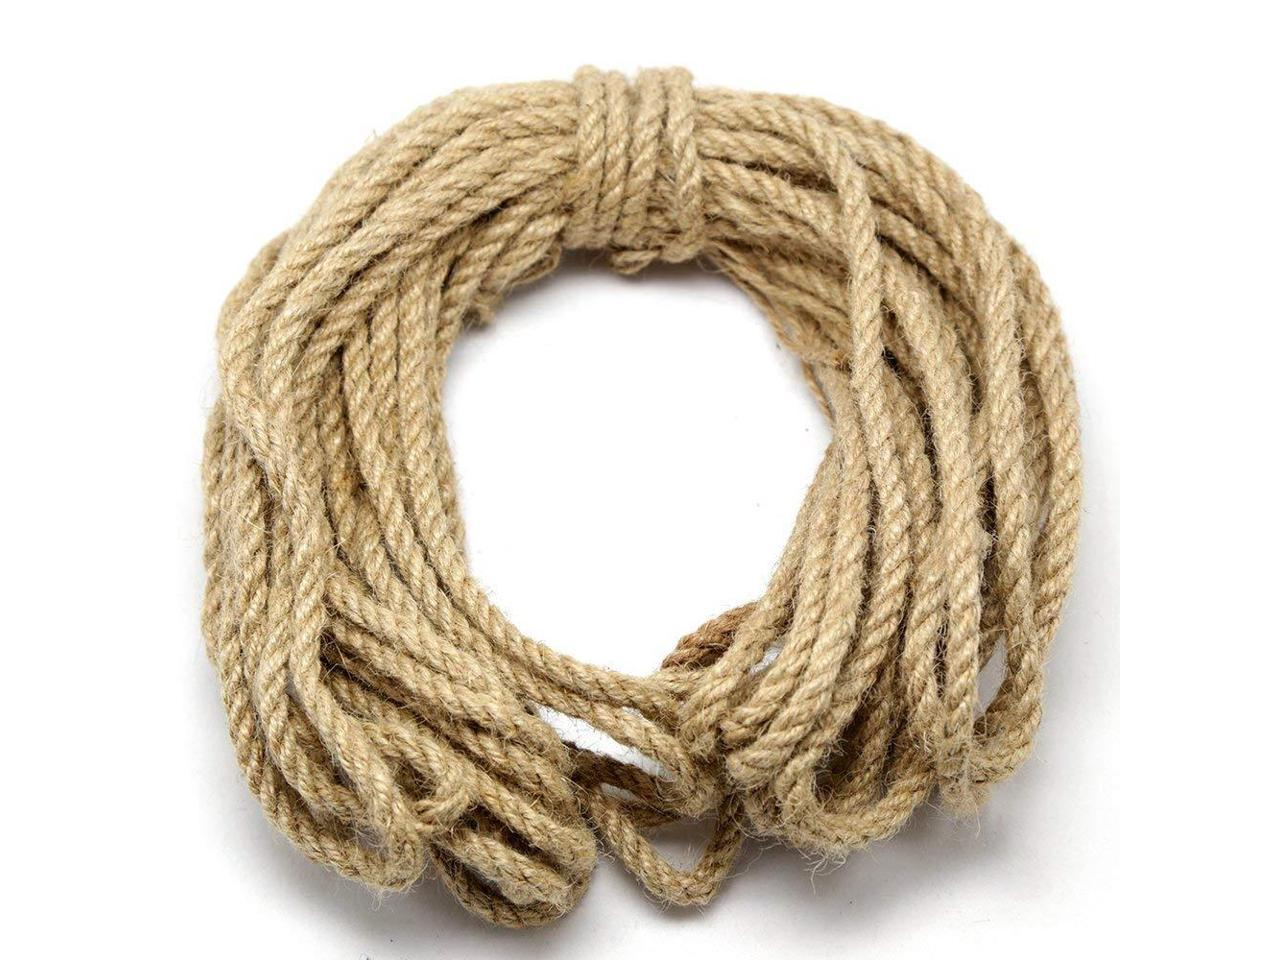 Natural Jute Twine Durable Industrial Packing Materials Heavy Duty Natural Brown Twine Jute Rope//string 328ft//100m for Arts Crafts /& Gardening Applications